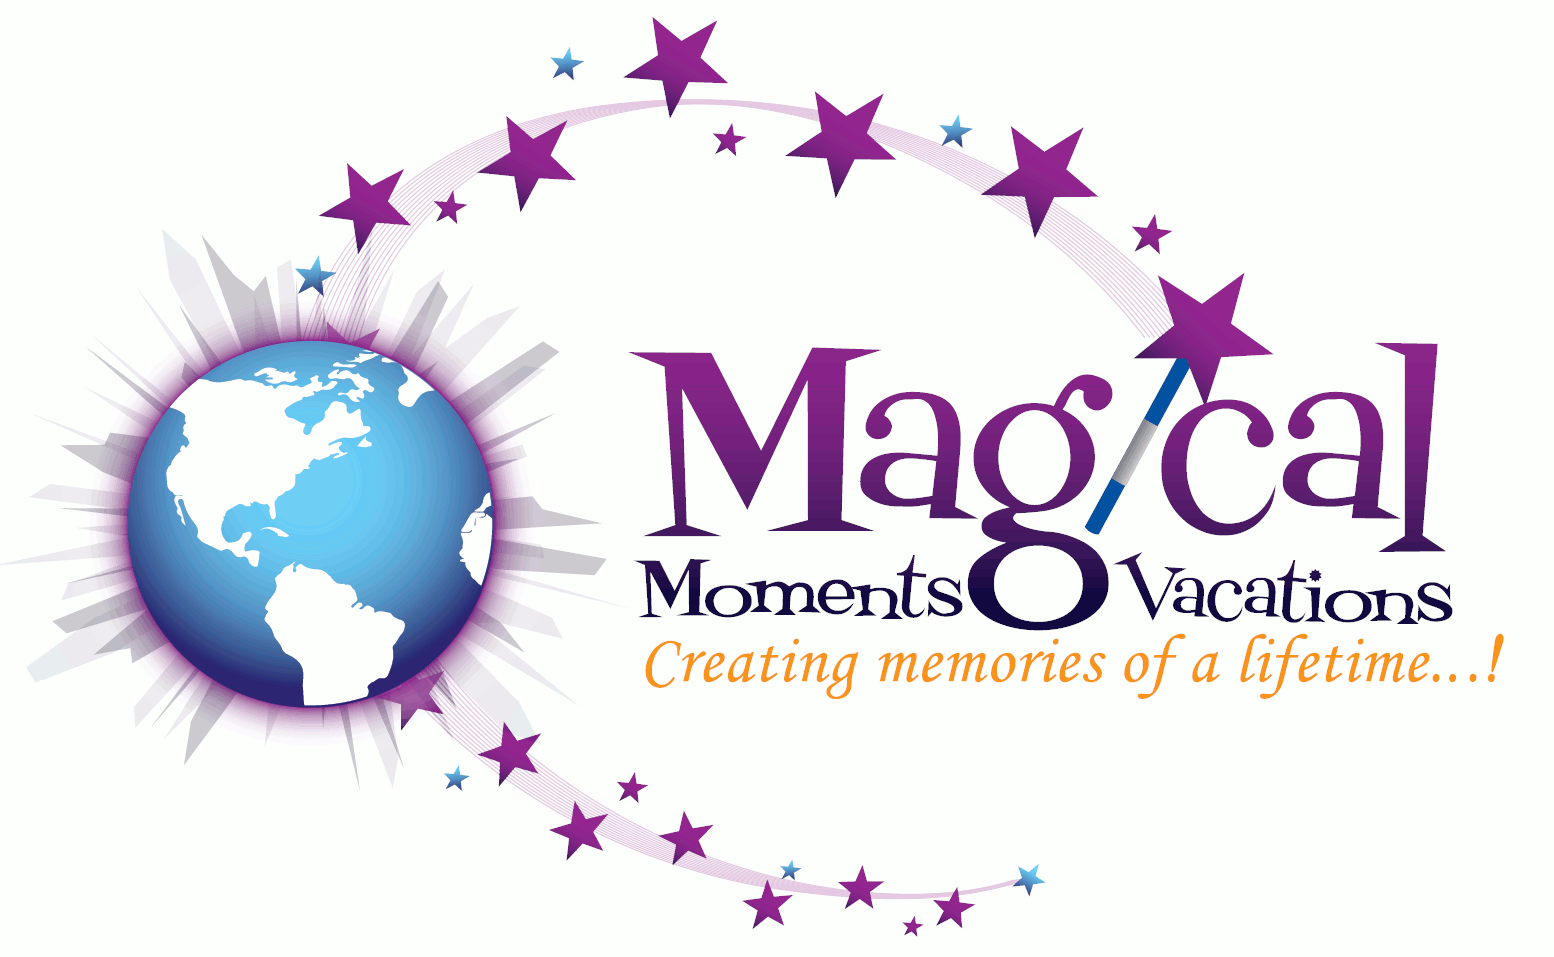 Magical Moments Vacations: Creating memories of a lifetime...!